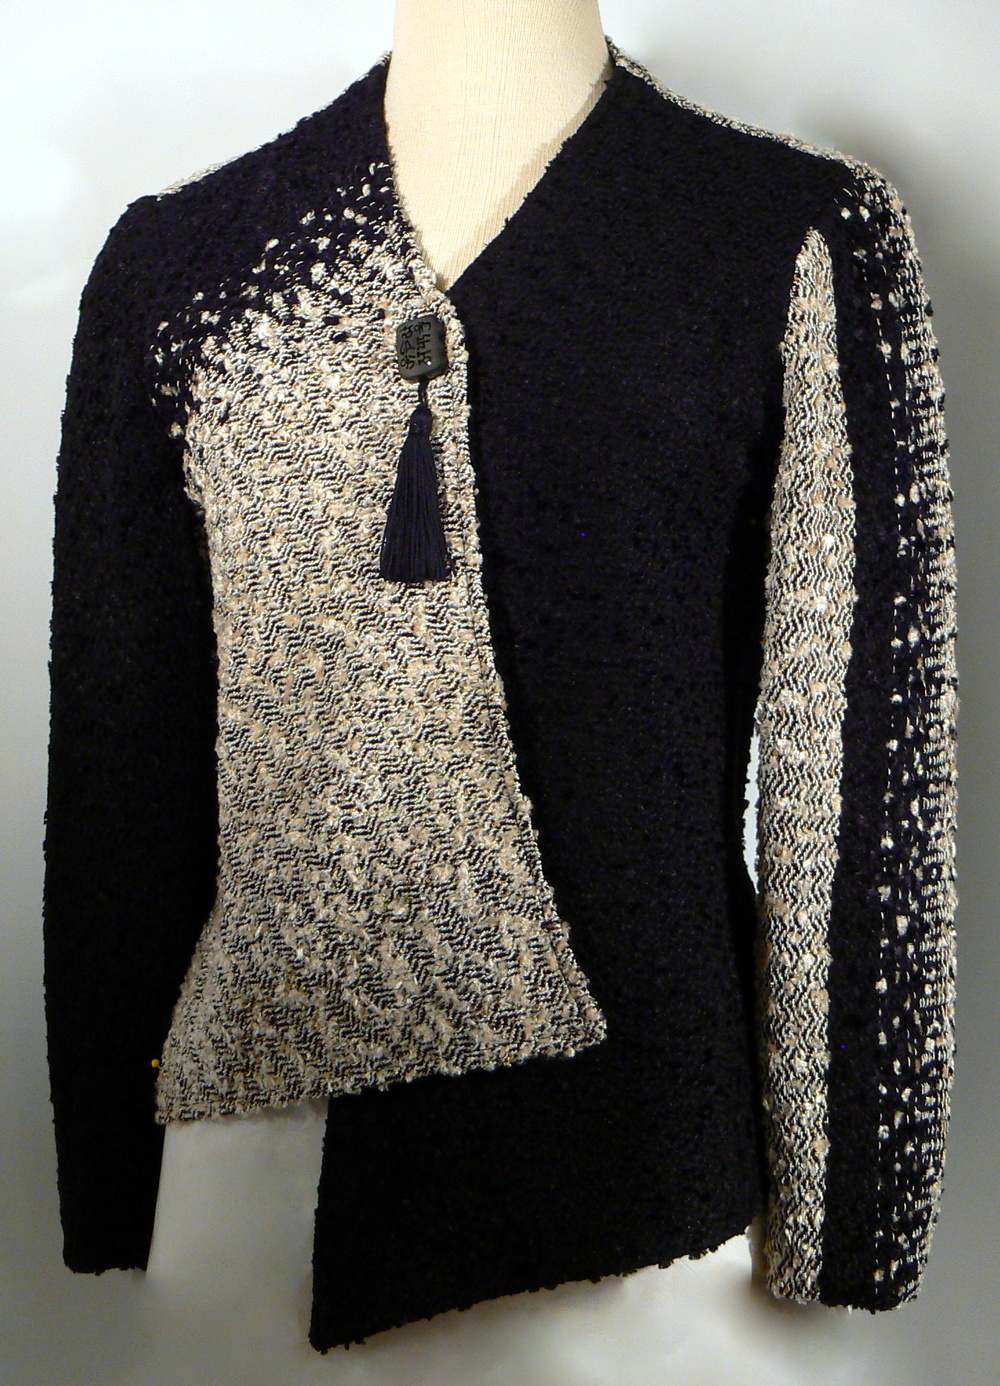 Handwoven Jacket Kathleen Weir-West-001.JPG